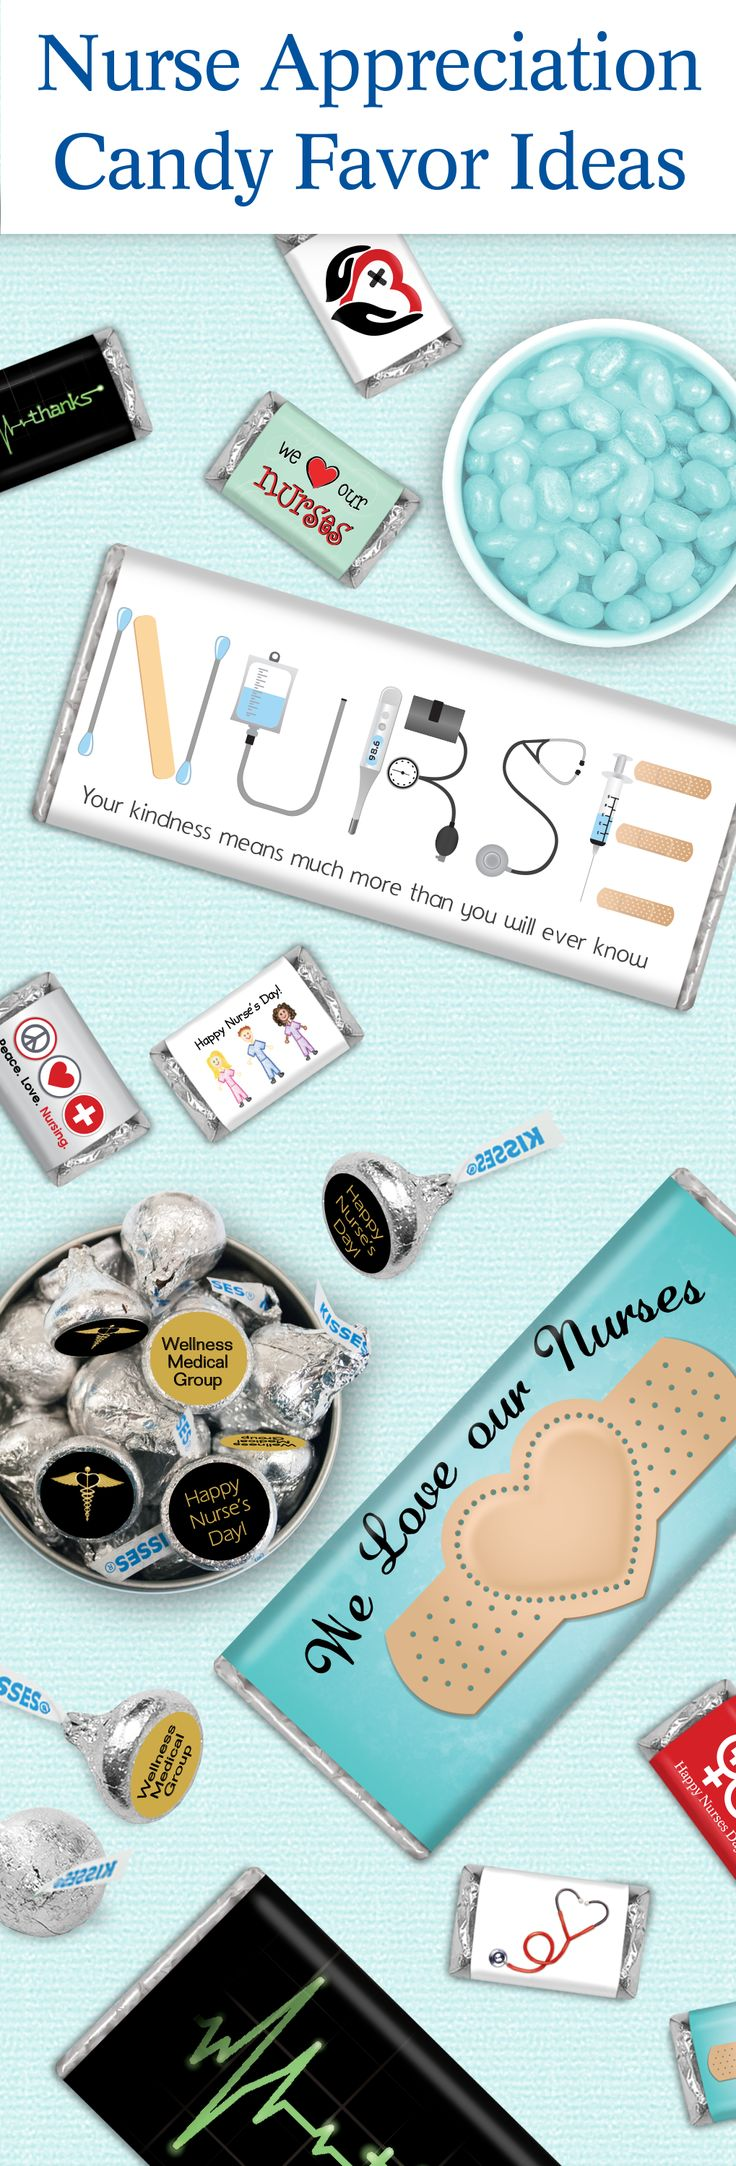 Nurse Appreciation Gifts: Personalized Candy Bars and Stickers for KISSES Candy - Affordable Nurse's Week and Nurse's Day Gifts to show you care!